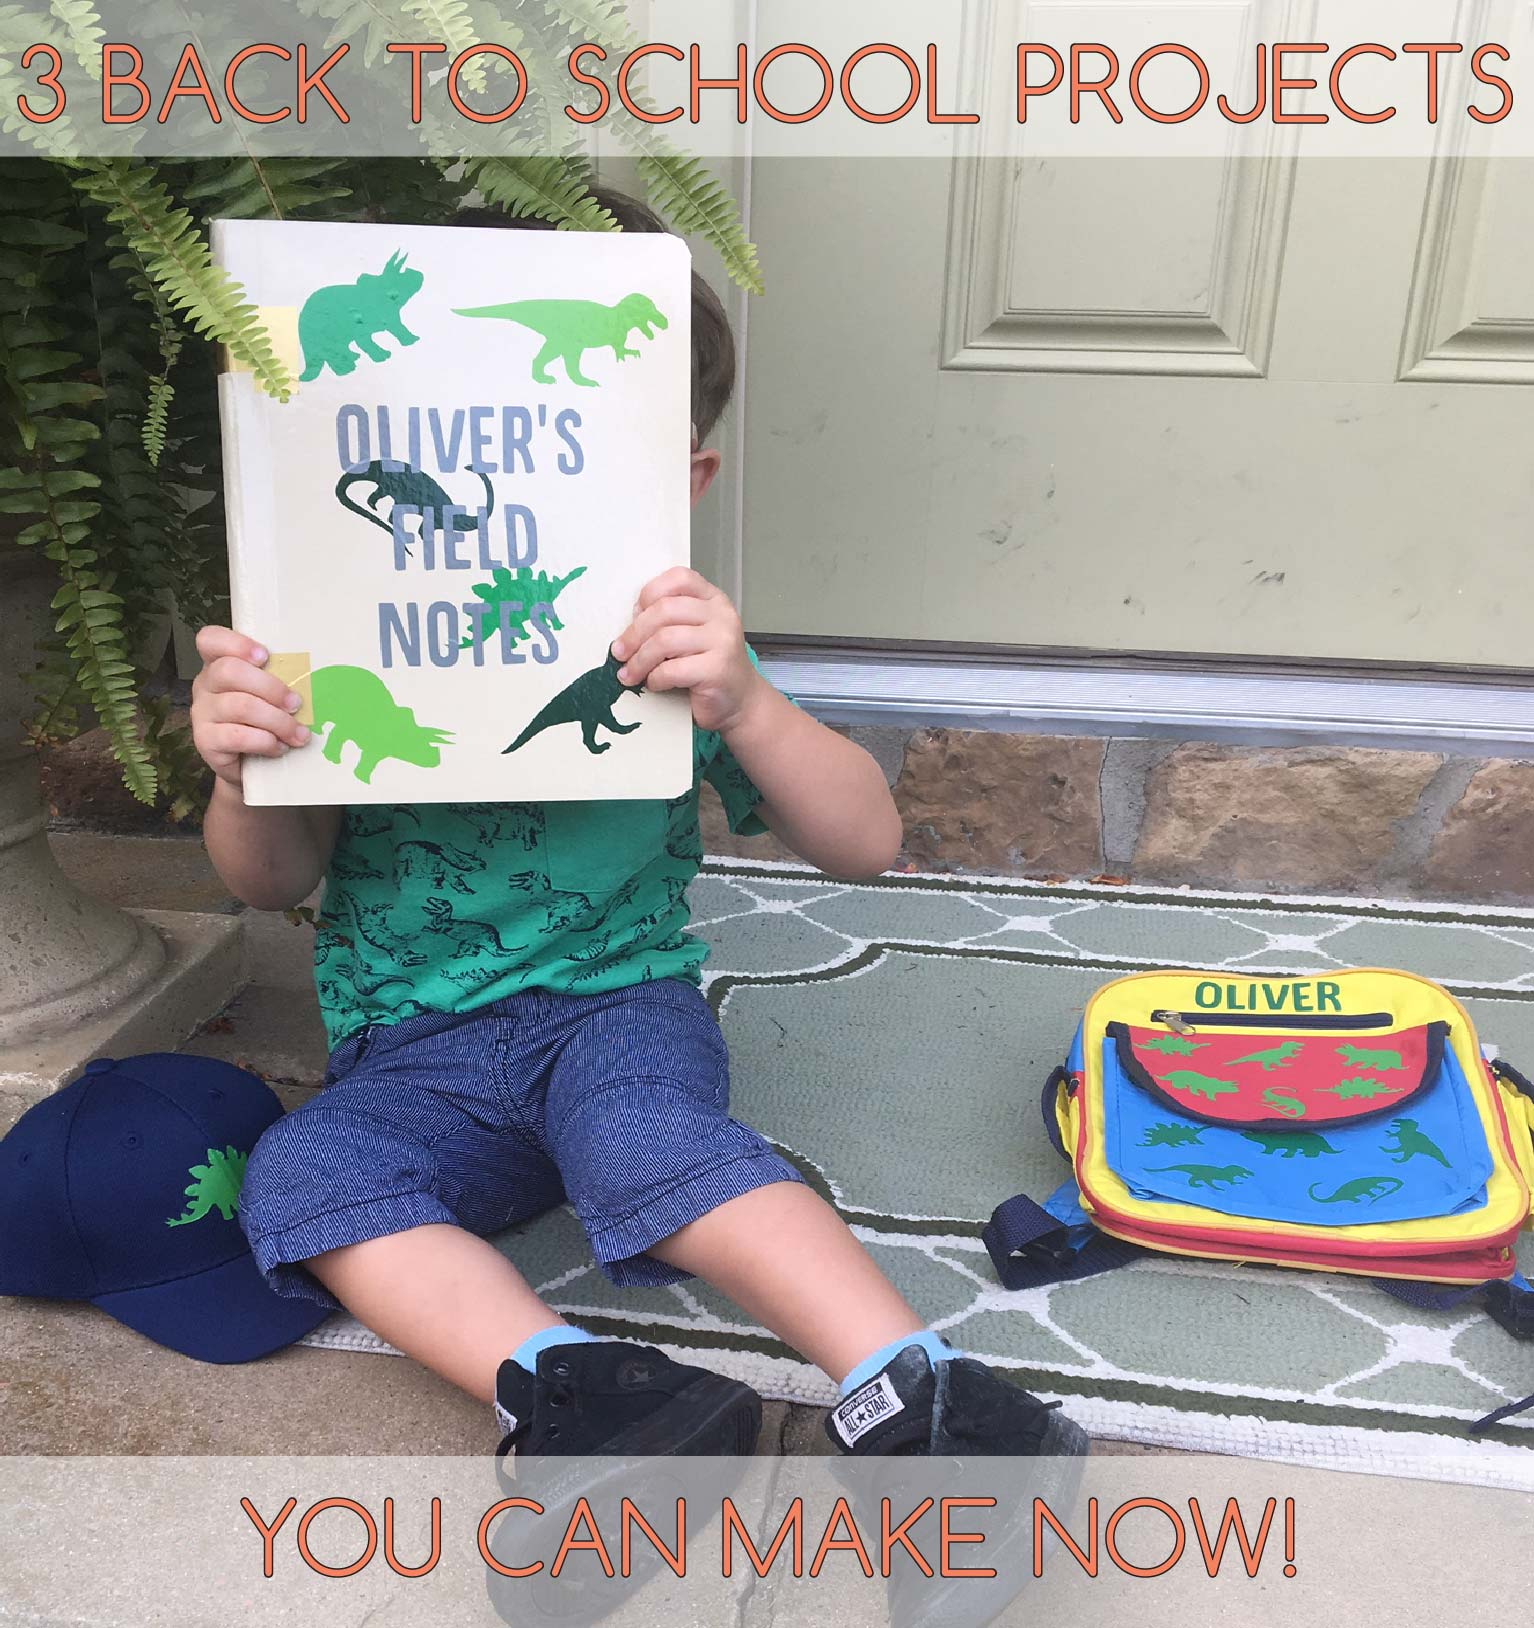 3 back to school projects